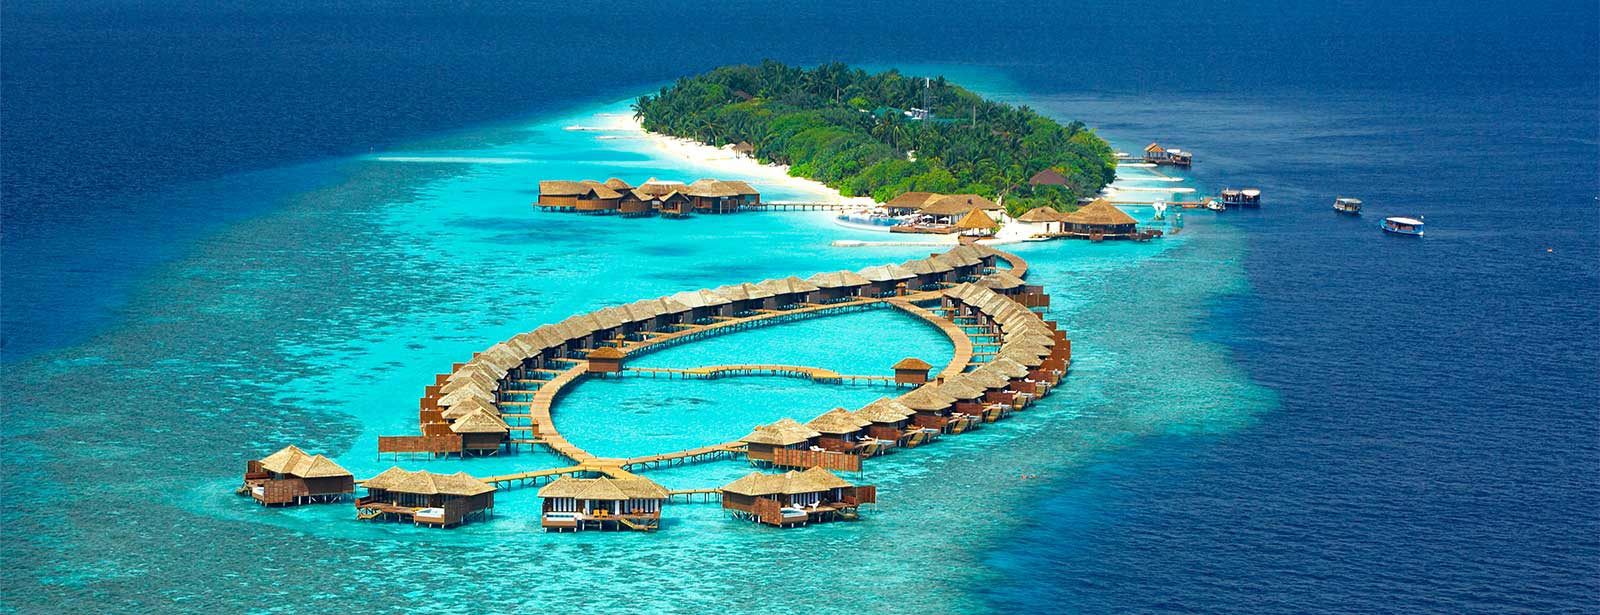 Lily Beach All Inclusive Maldives Resort